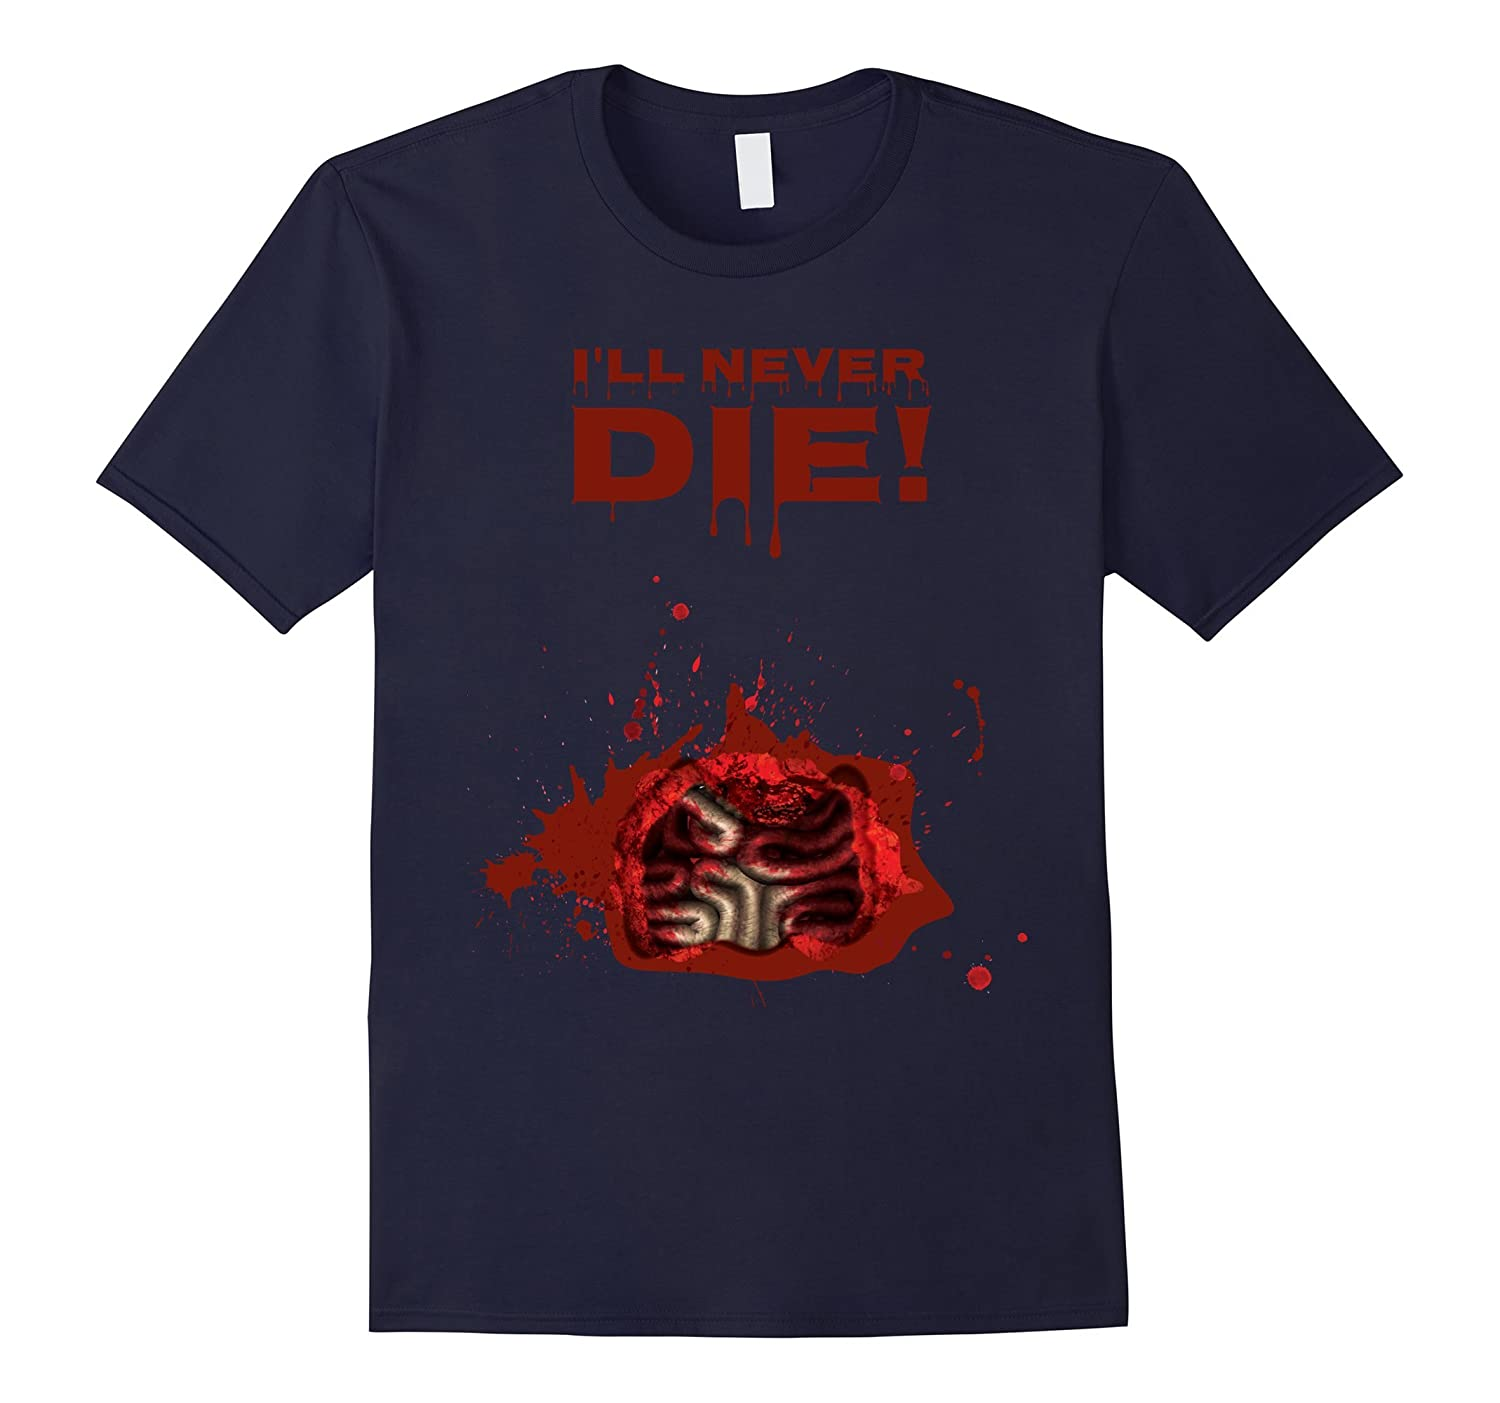 A Zombie Tried To Eat Me, But I'll Never Die!-T-Shirt